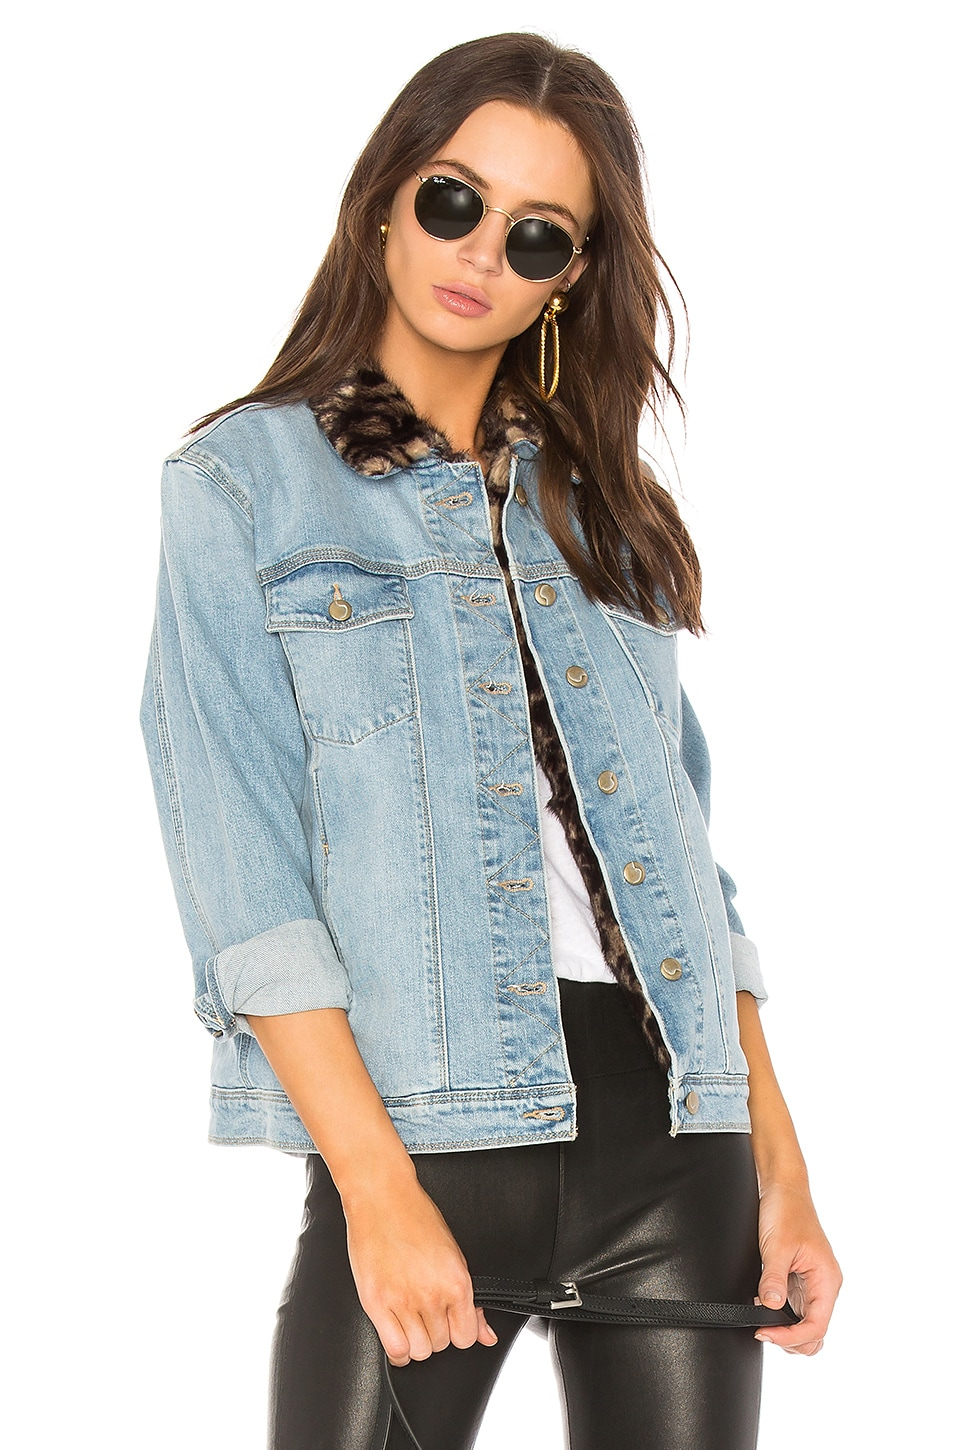 Joe's Jeans The Boyfriend Jacket with Faux Fur Collar in Kamryn